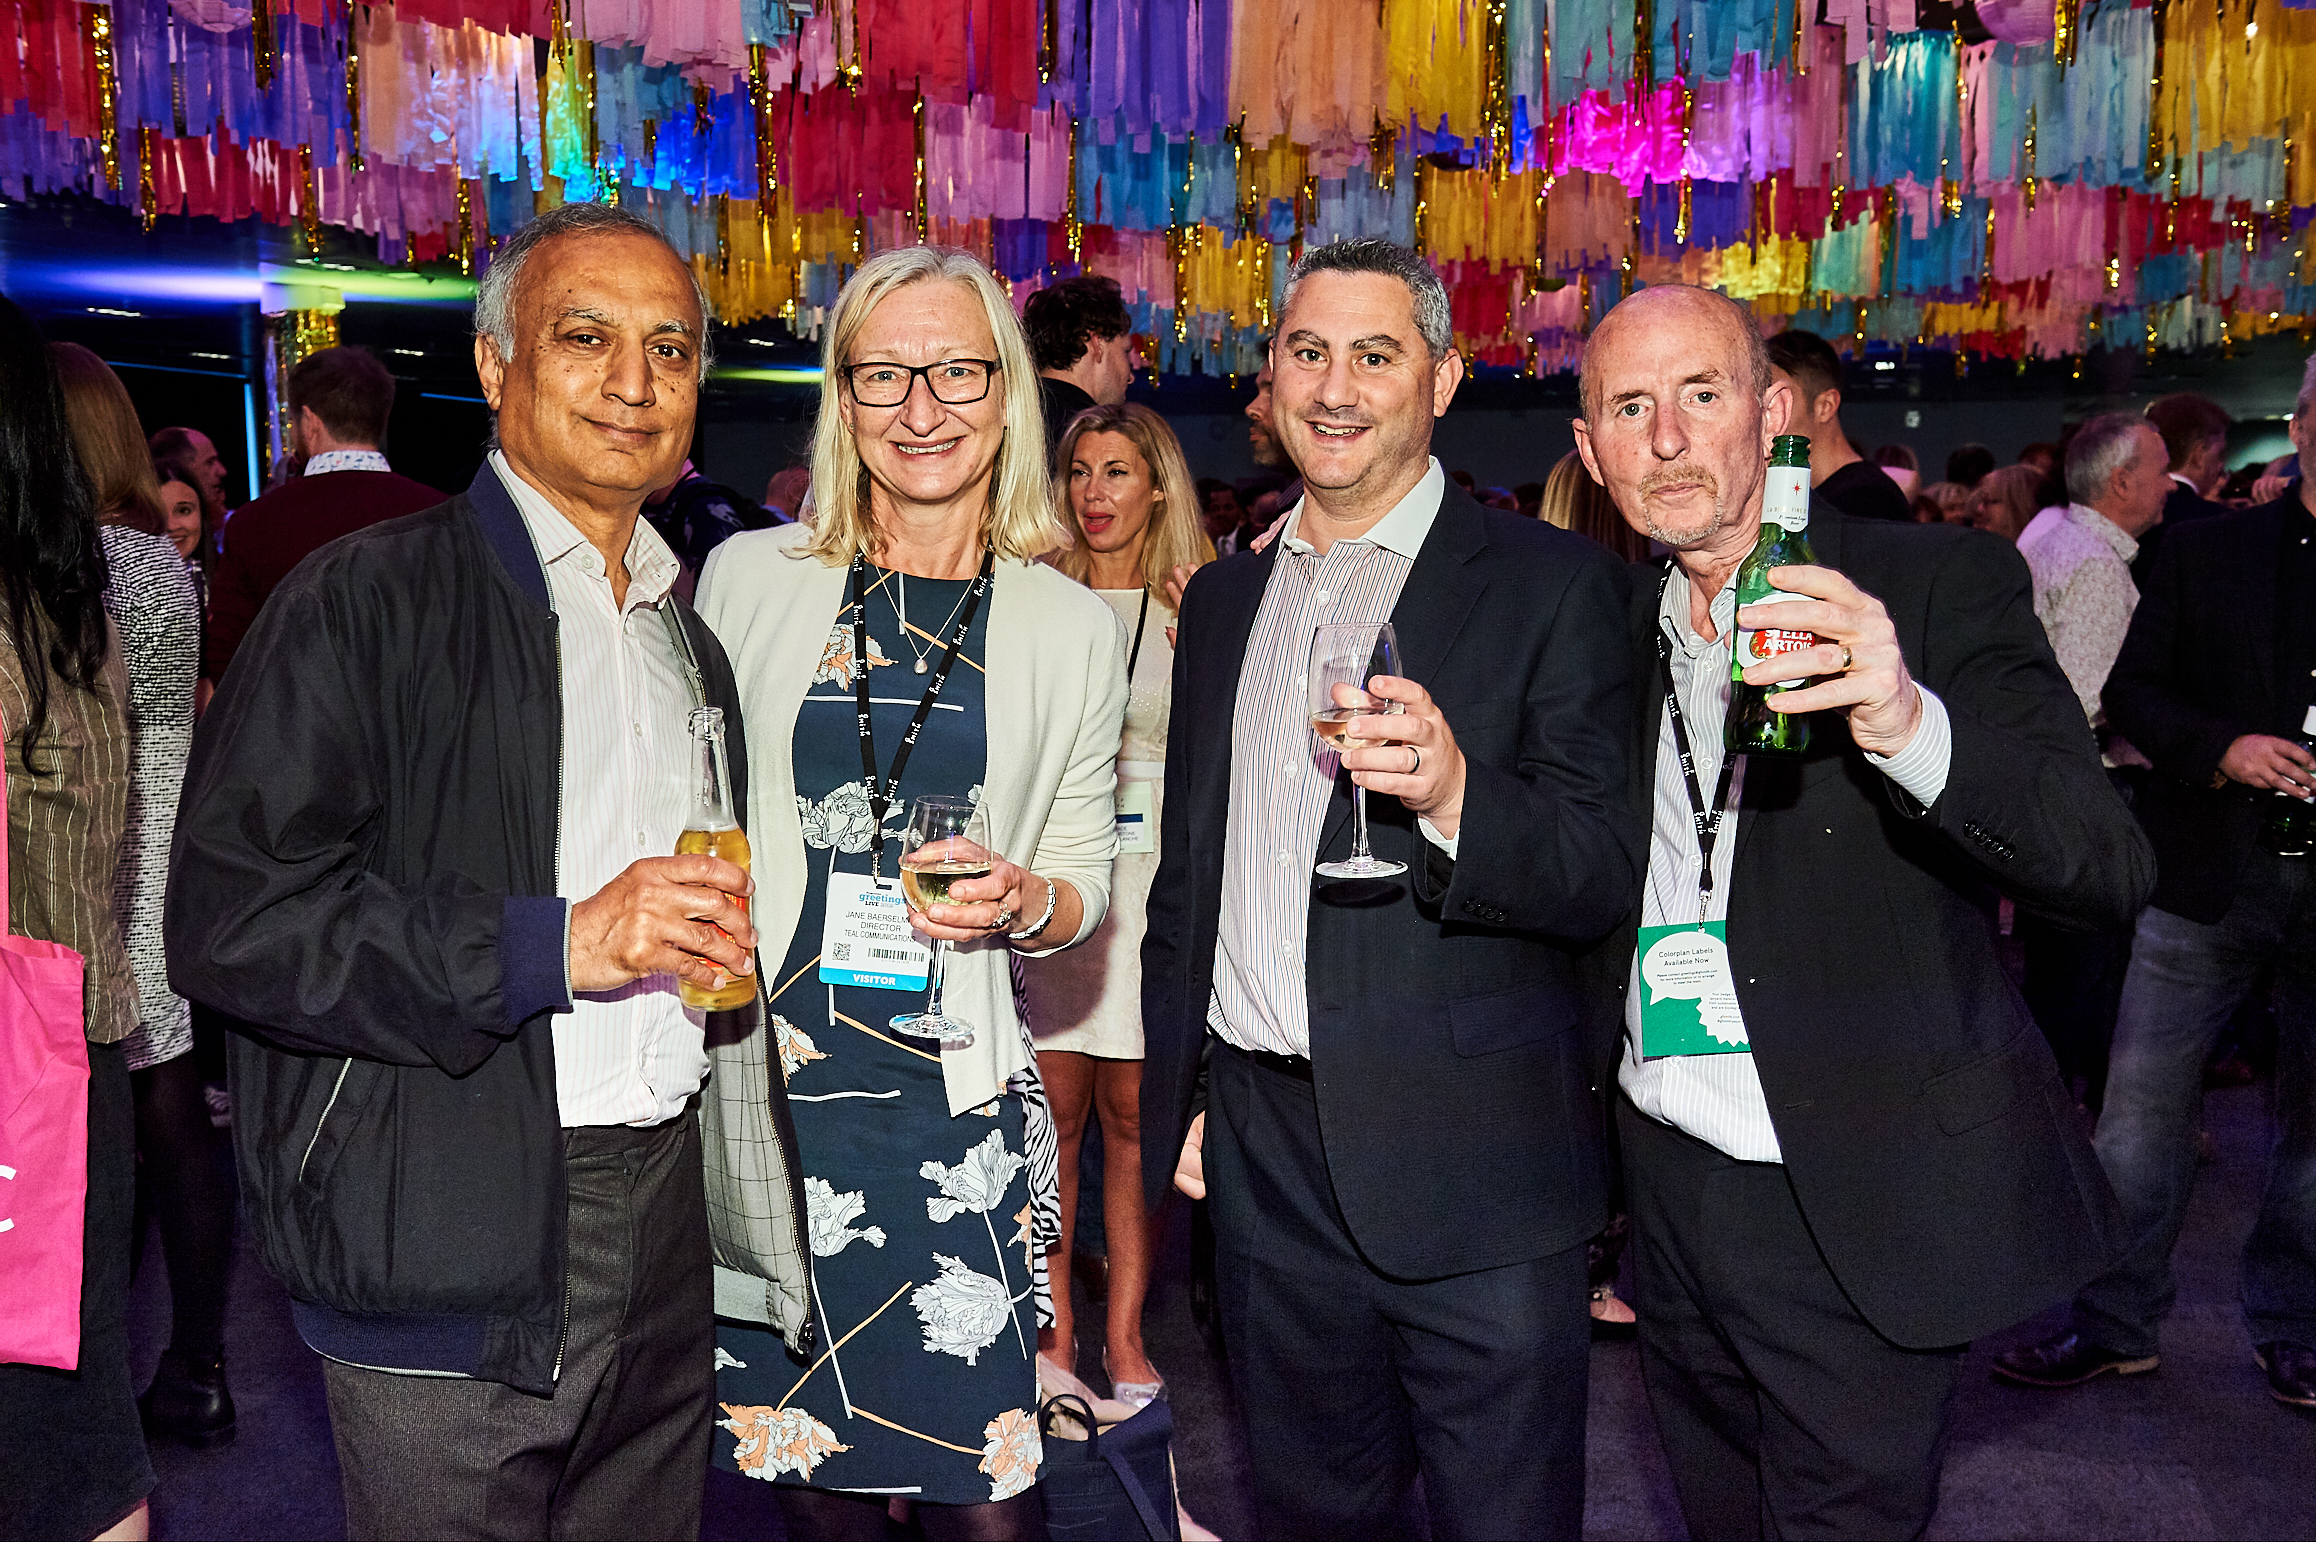 Above: Daniel Prince (second left) with Danilo colleagues at the PG Live opening night party.